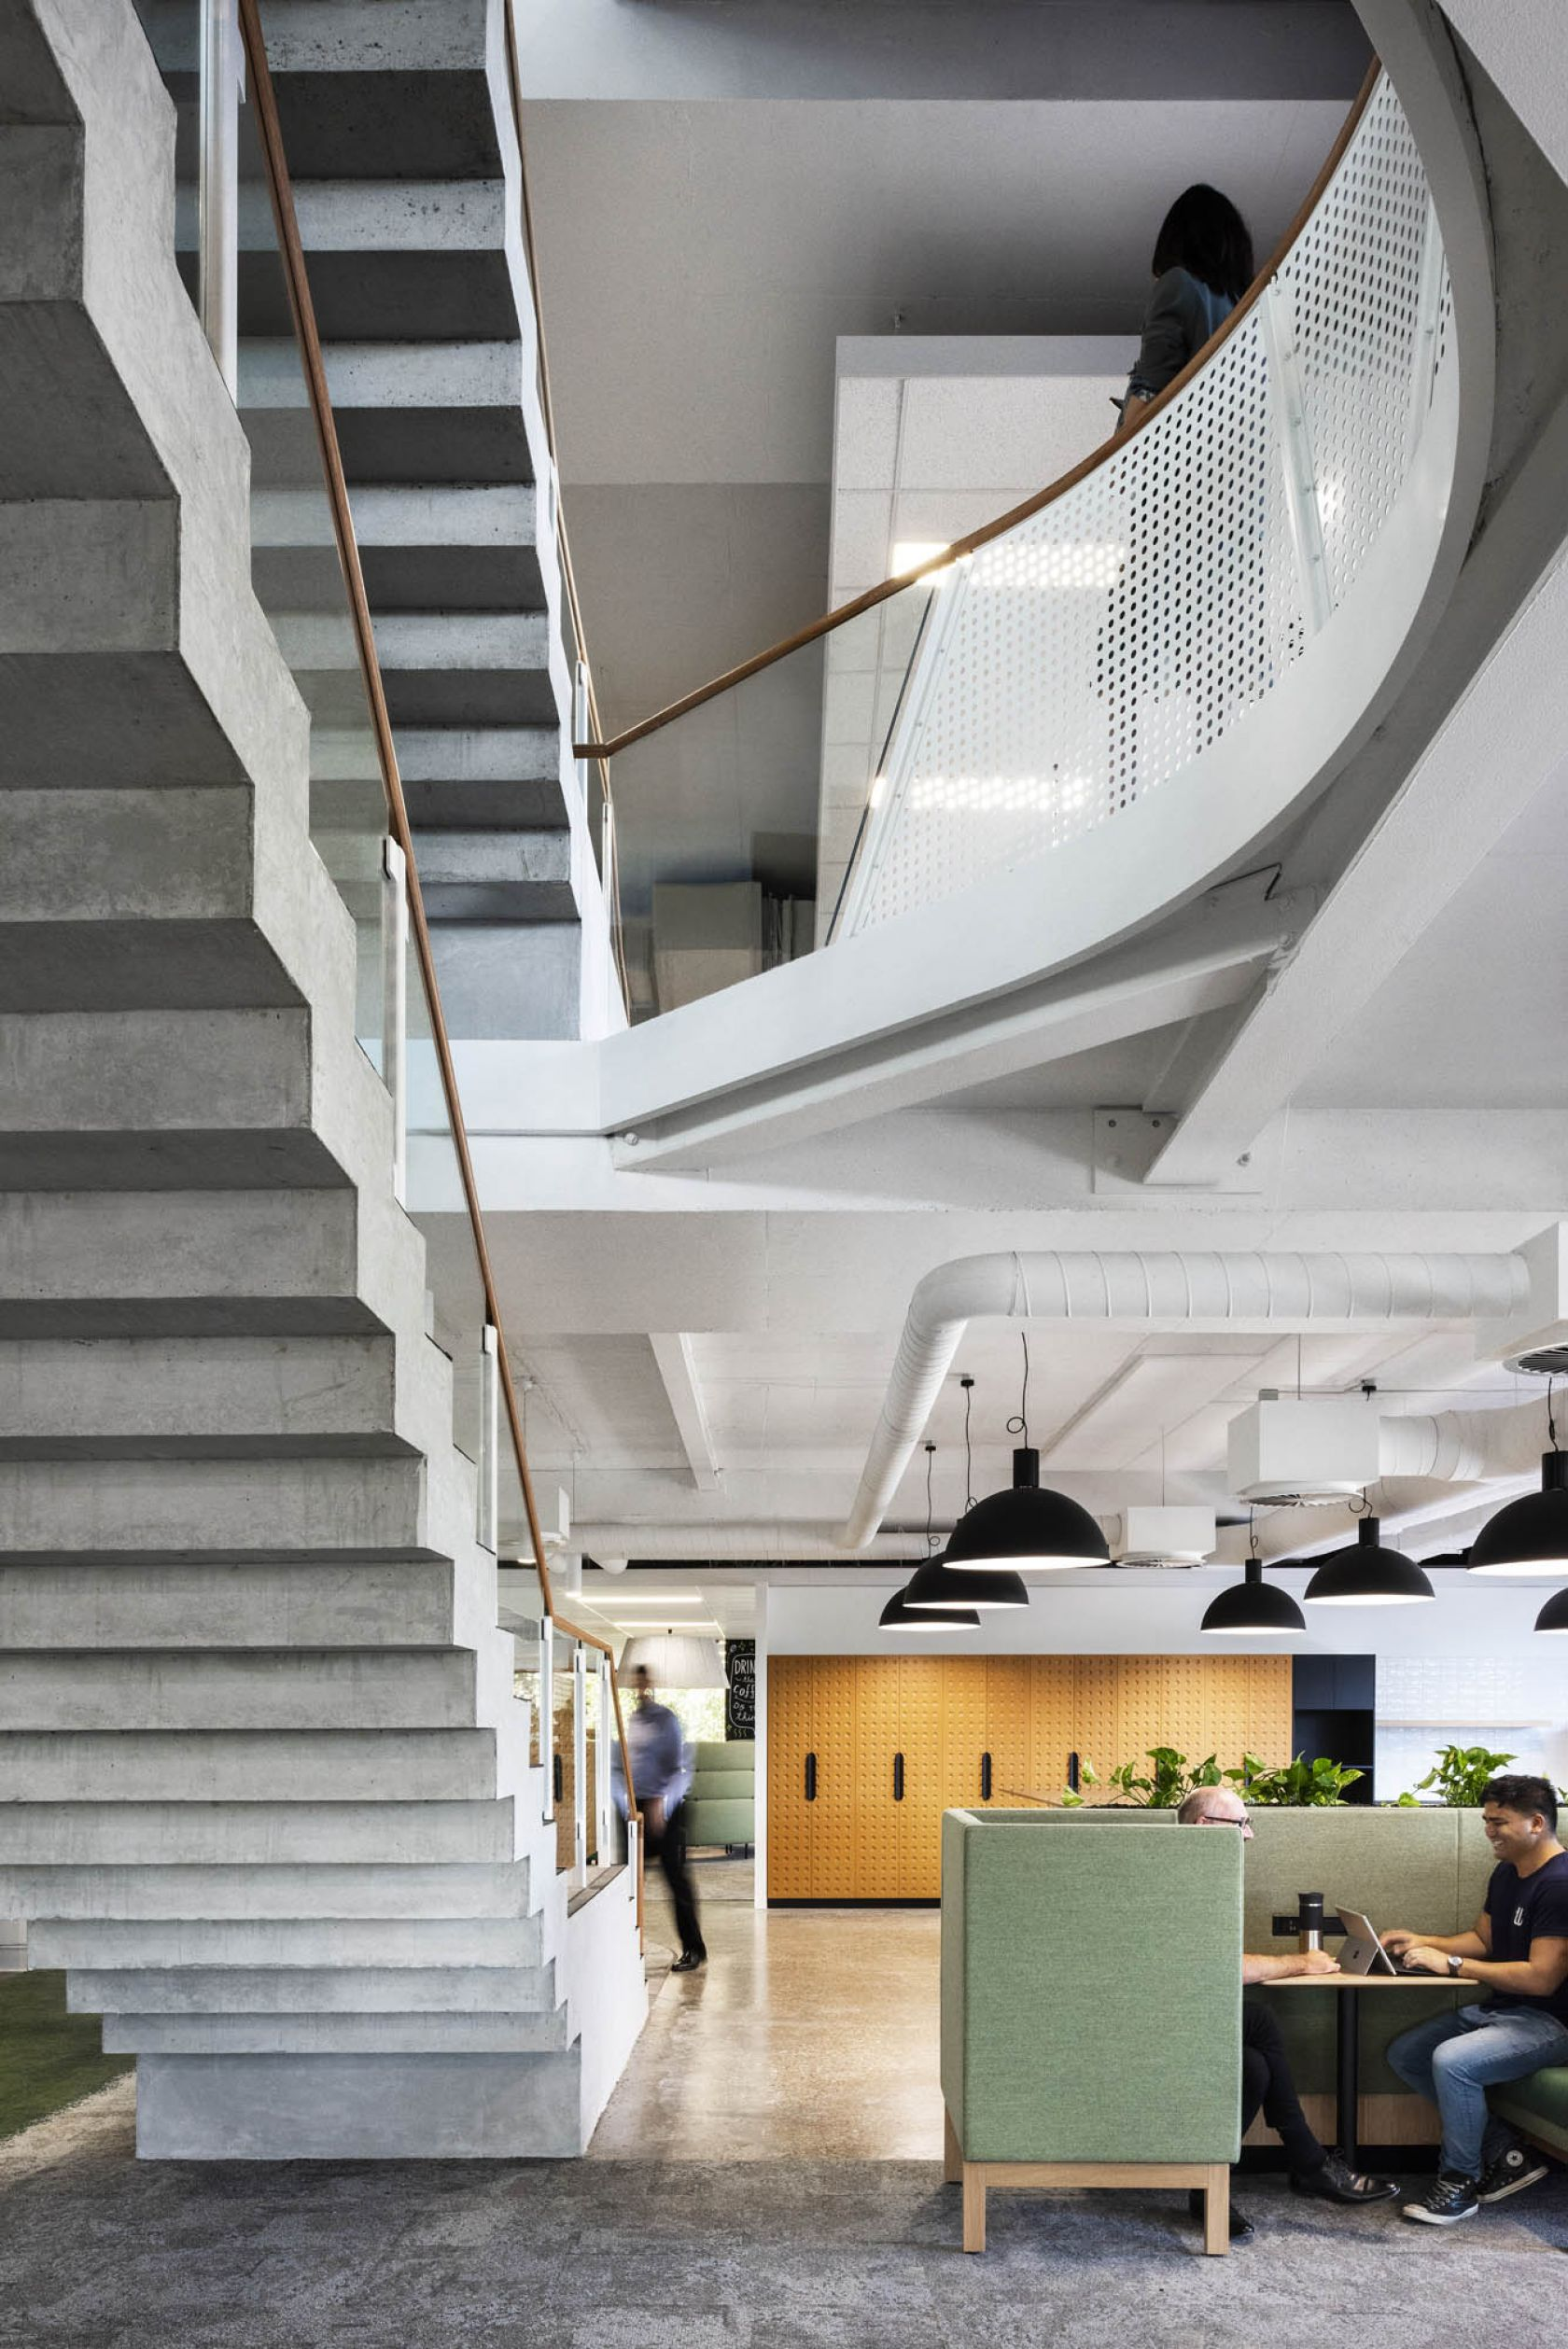 7-Eleven fitout workplace commercial Melbourne stairs concrete glass void